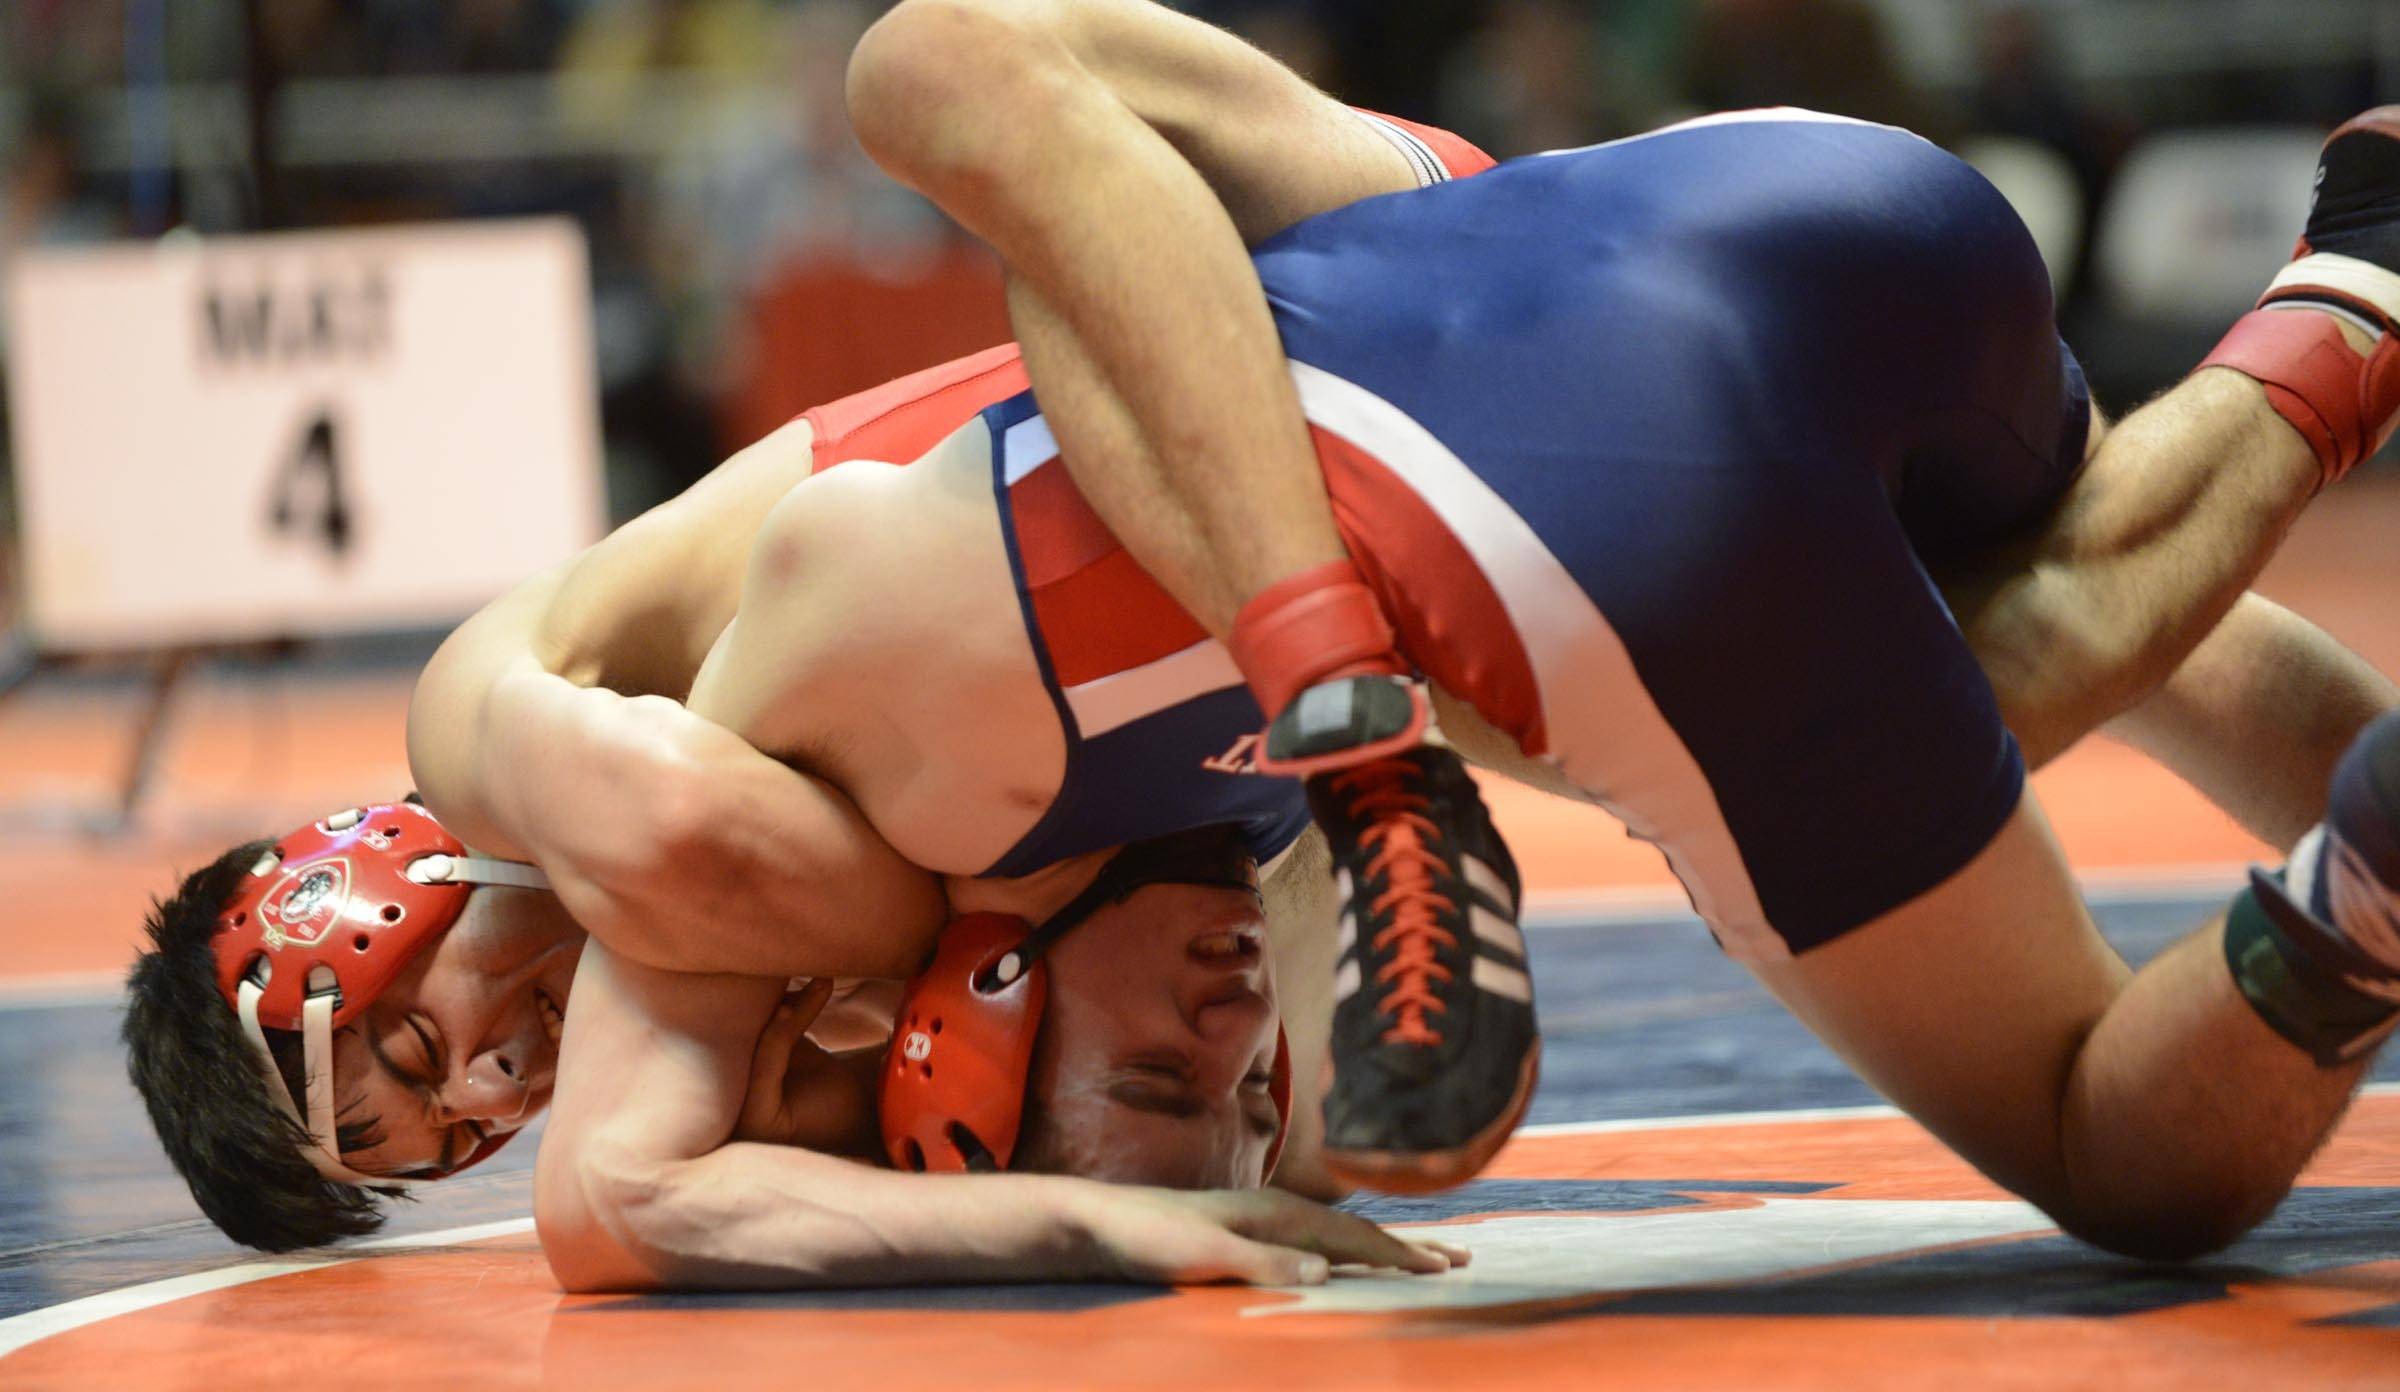 Bobby Alexander of Conant, bottom, competes against Ameen Hamdan of Marist on Saturday in the 132-pound third-place match at State Farm Center in Champaign.